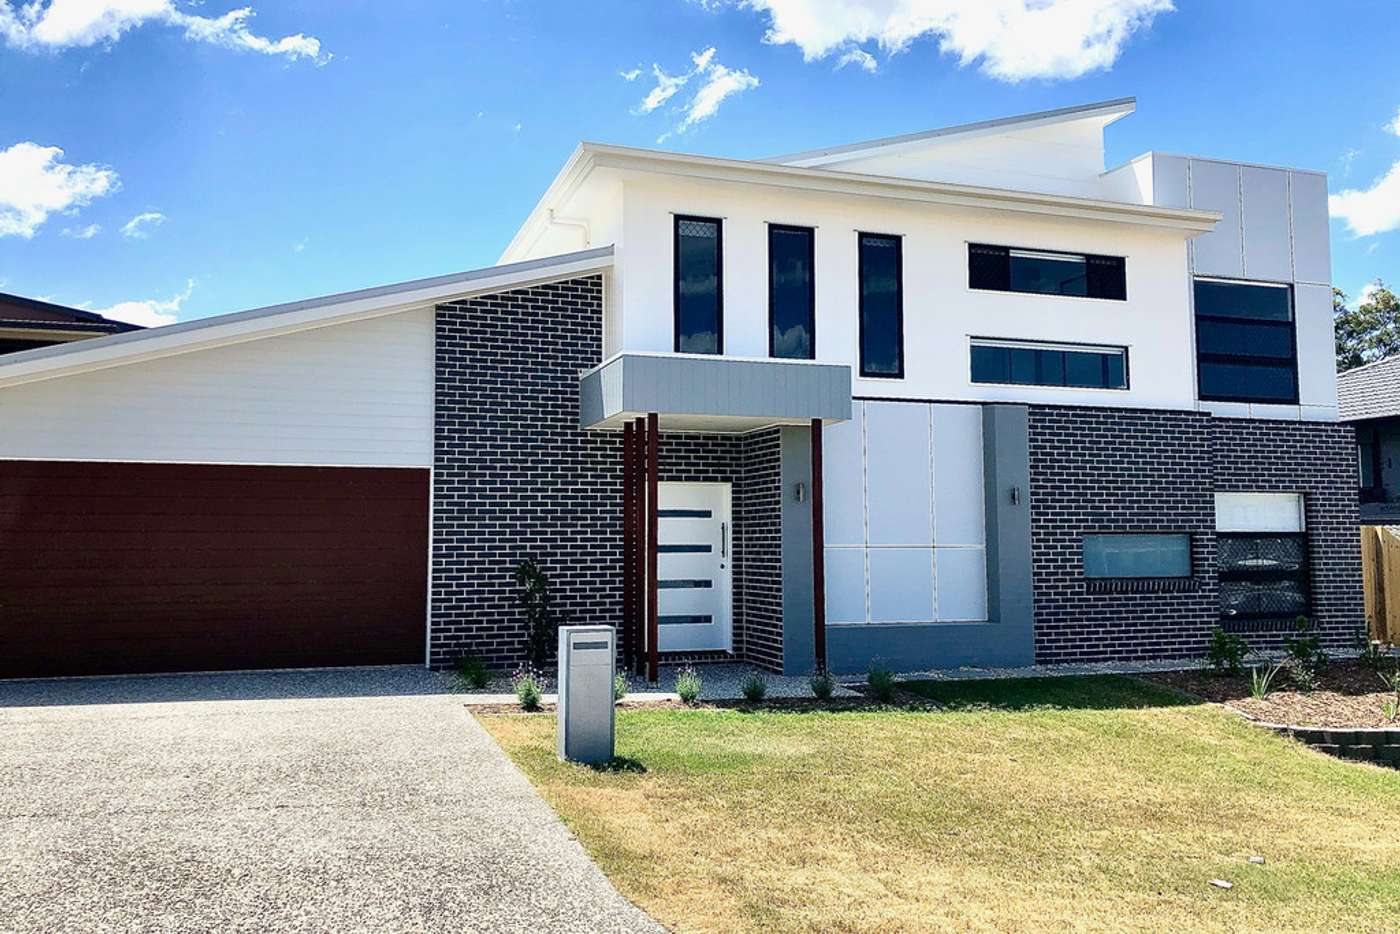 Main view of Homely house listing, 5 Ismaeel Circuit, Kuraby QLD 4112